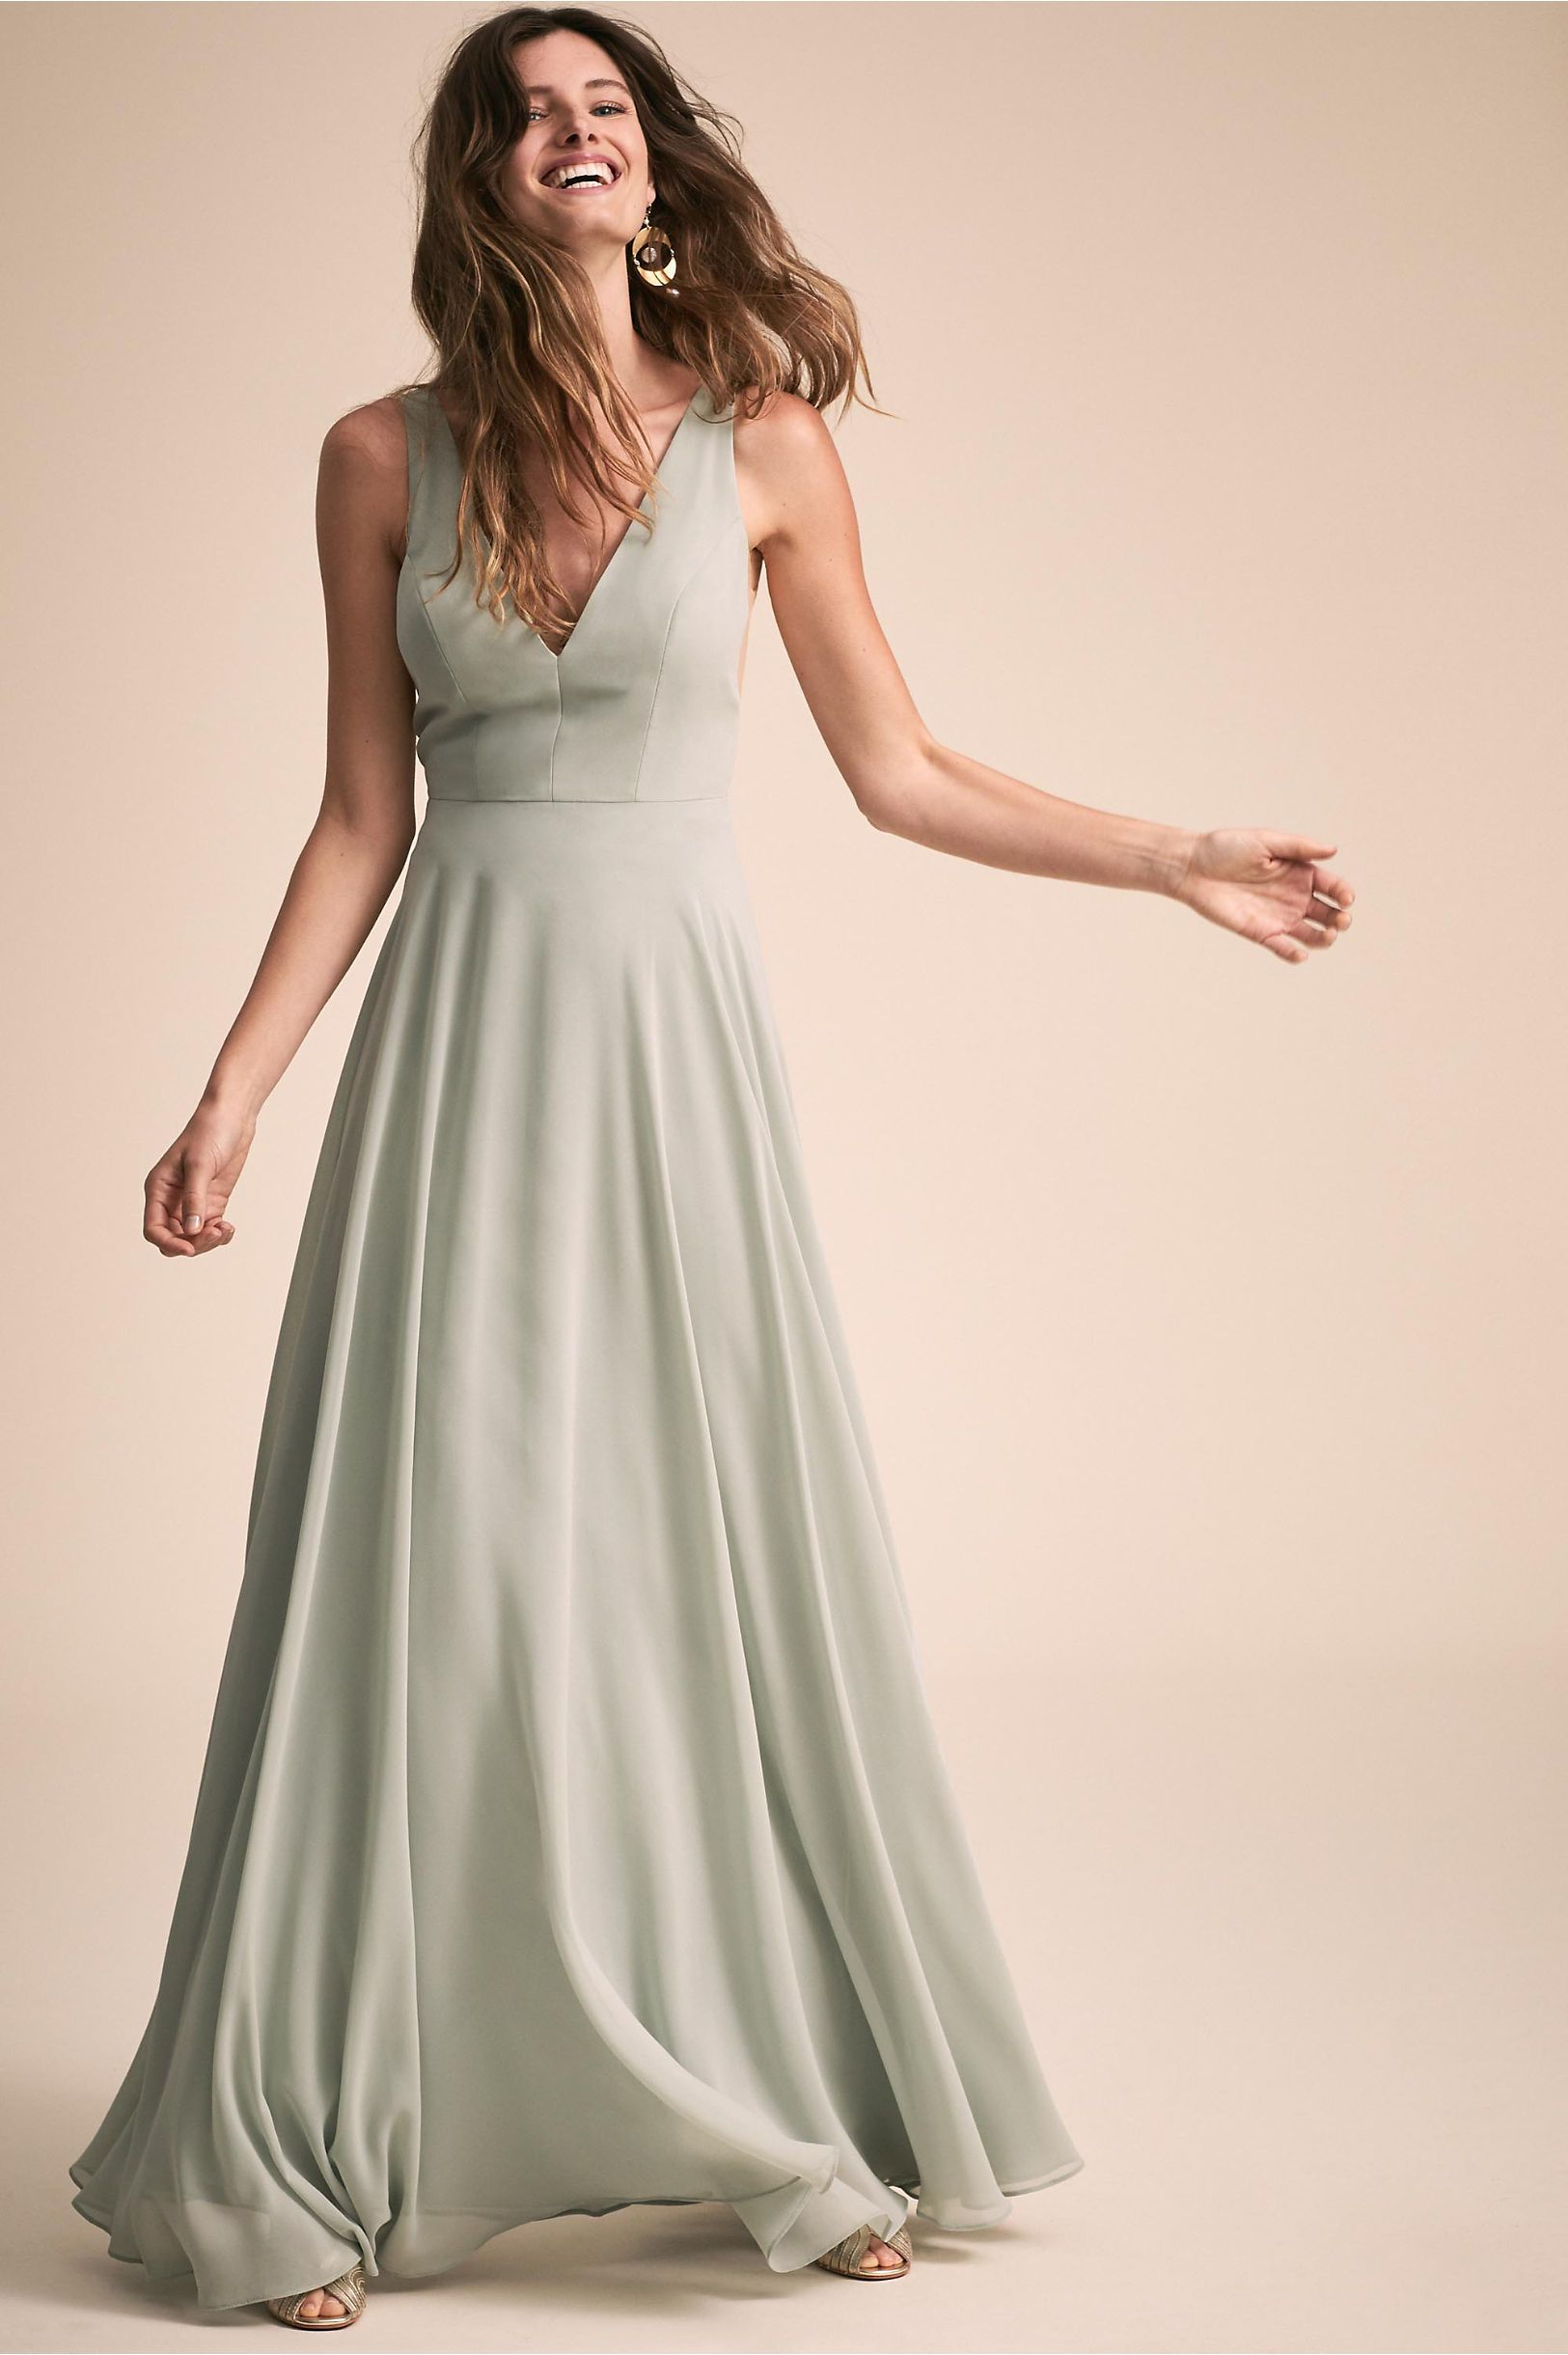 533ec54b46 BHLDN s Jenny Yoo Colby Dress in Morning Mist